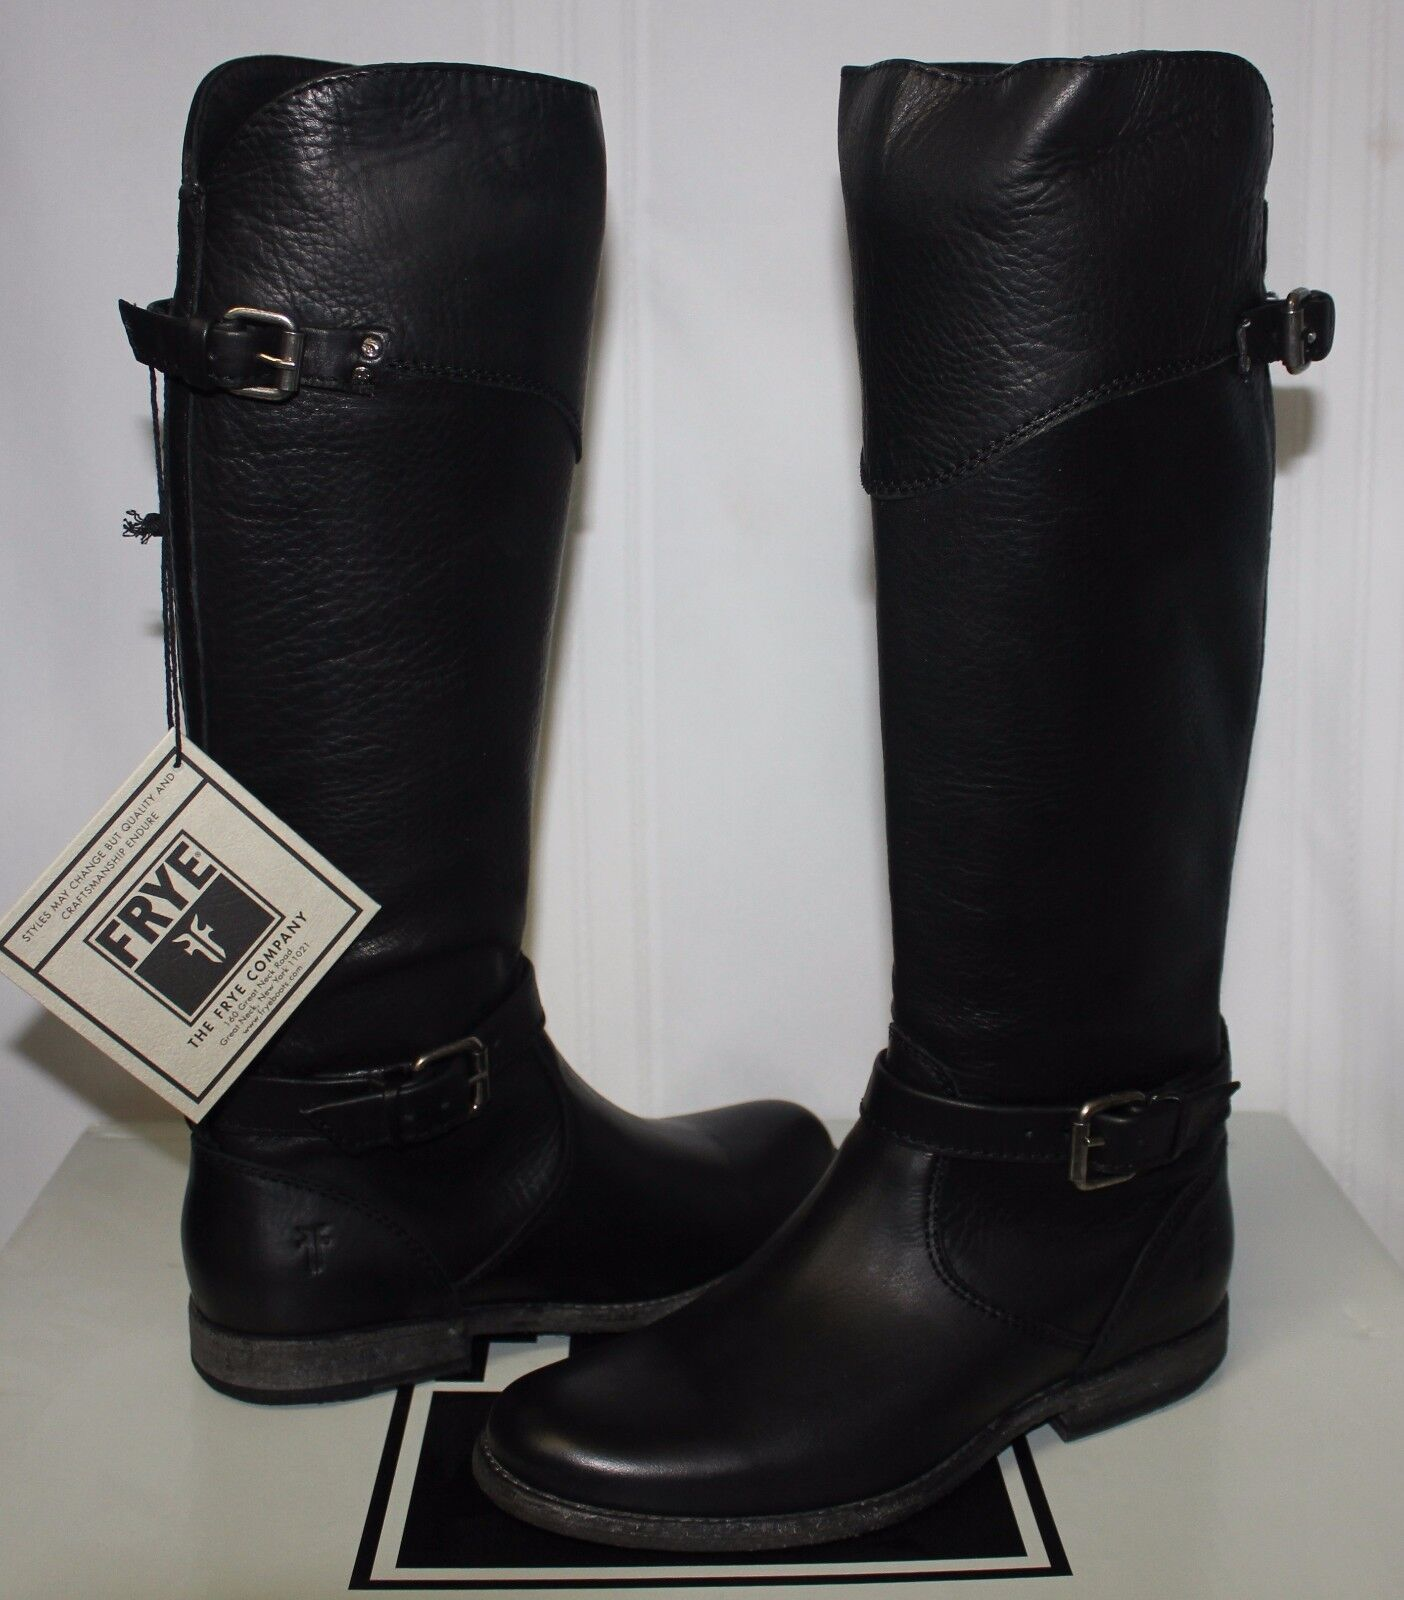 Frye Women's Phillip Riding Boots Style 76844 Black New With Box!